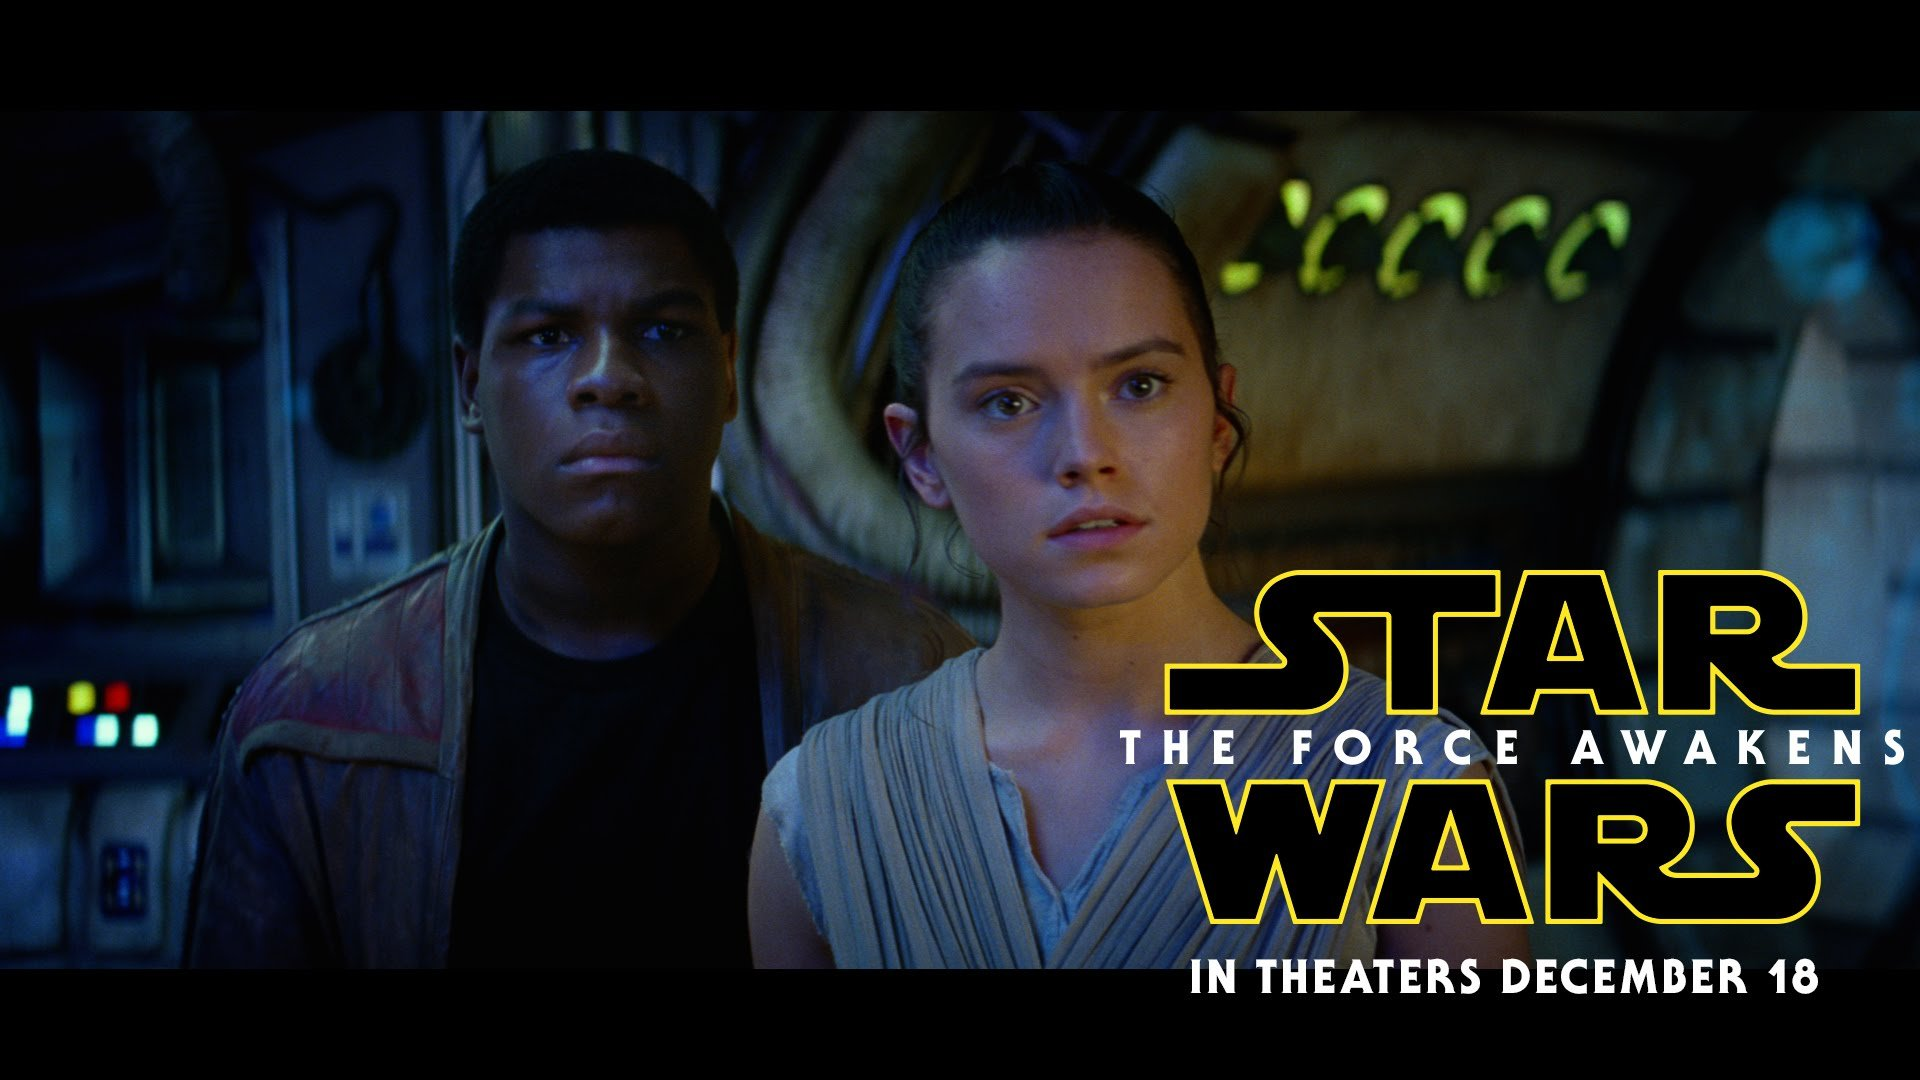 Trailer For 'Star Wars: The Force Awakens' Viewed Over 2.4 Million Times... Per Hour